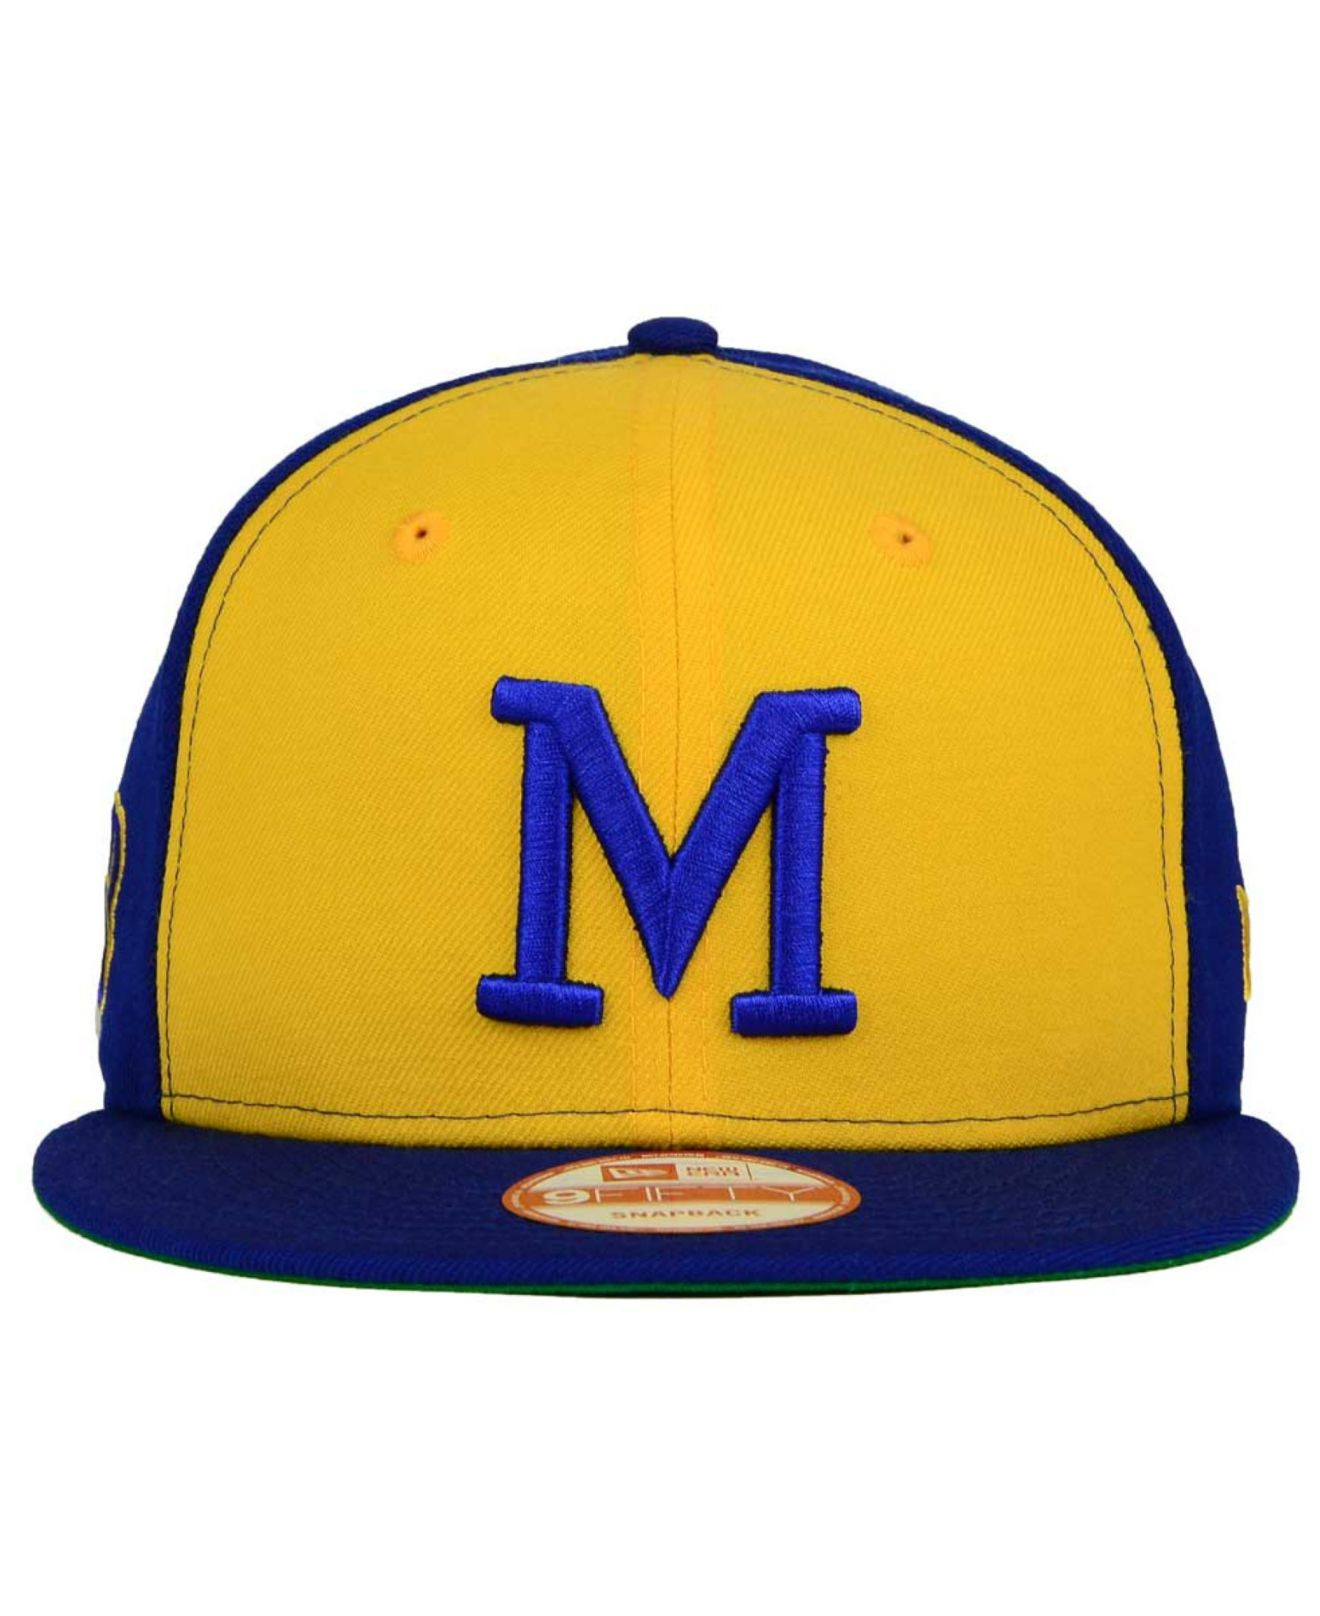 newest 3d8df 815ca KTZ Milwaukee Brewers 2 Tone Link Cooperstown 9fifty Snapback Cap in ...